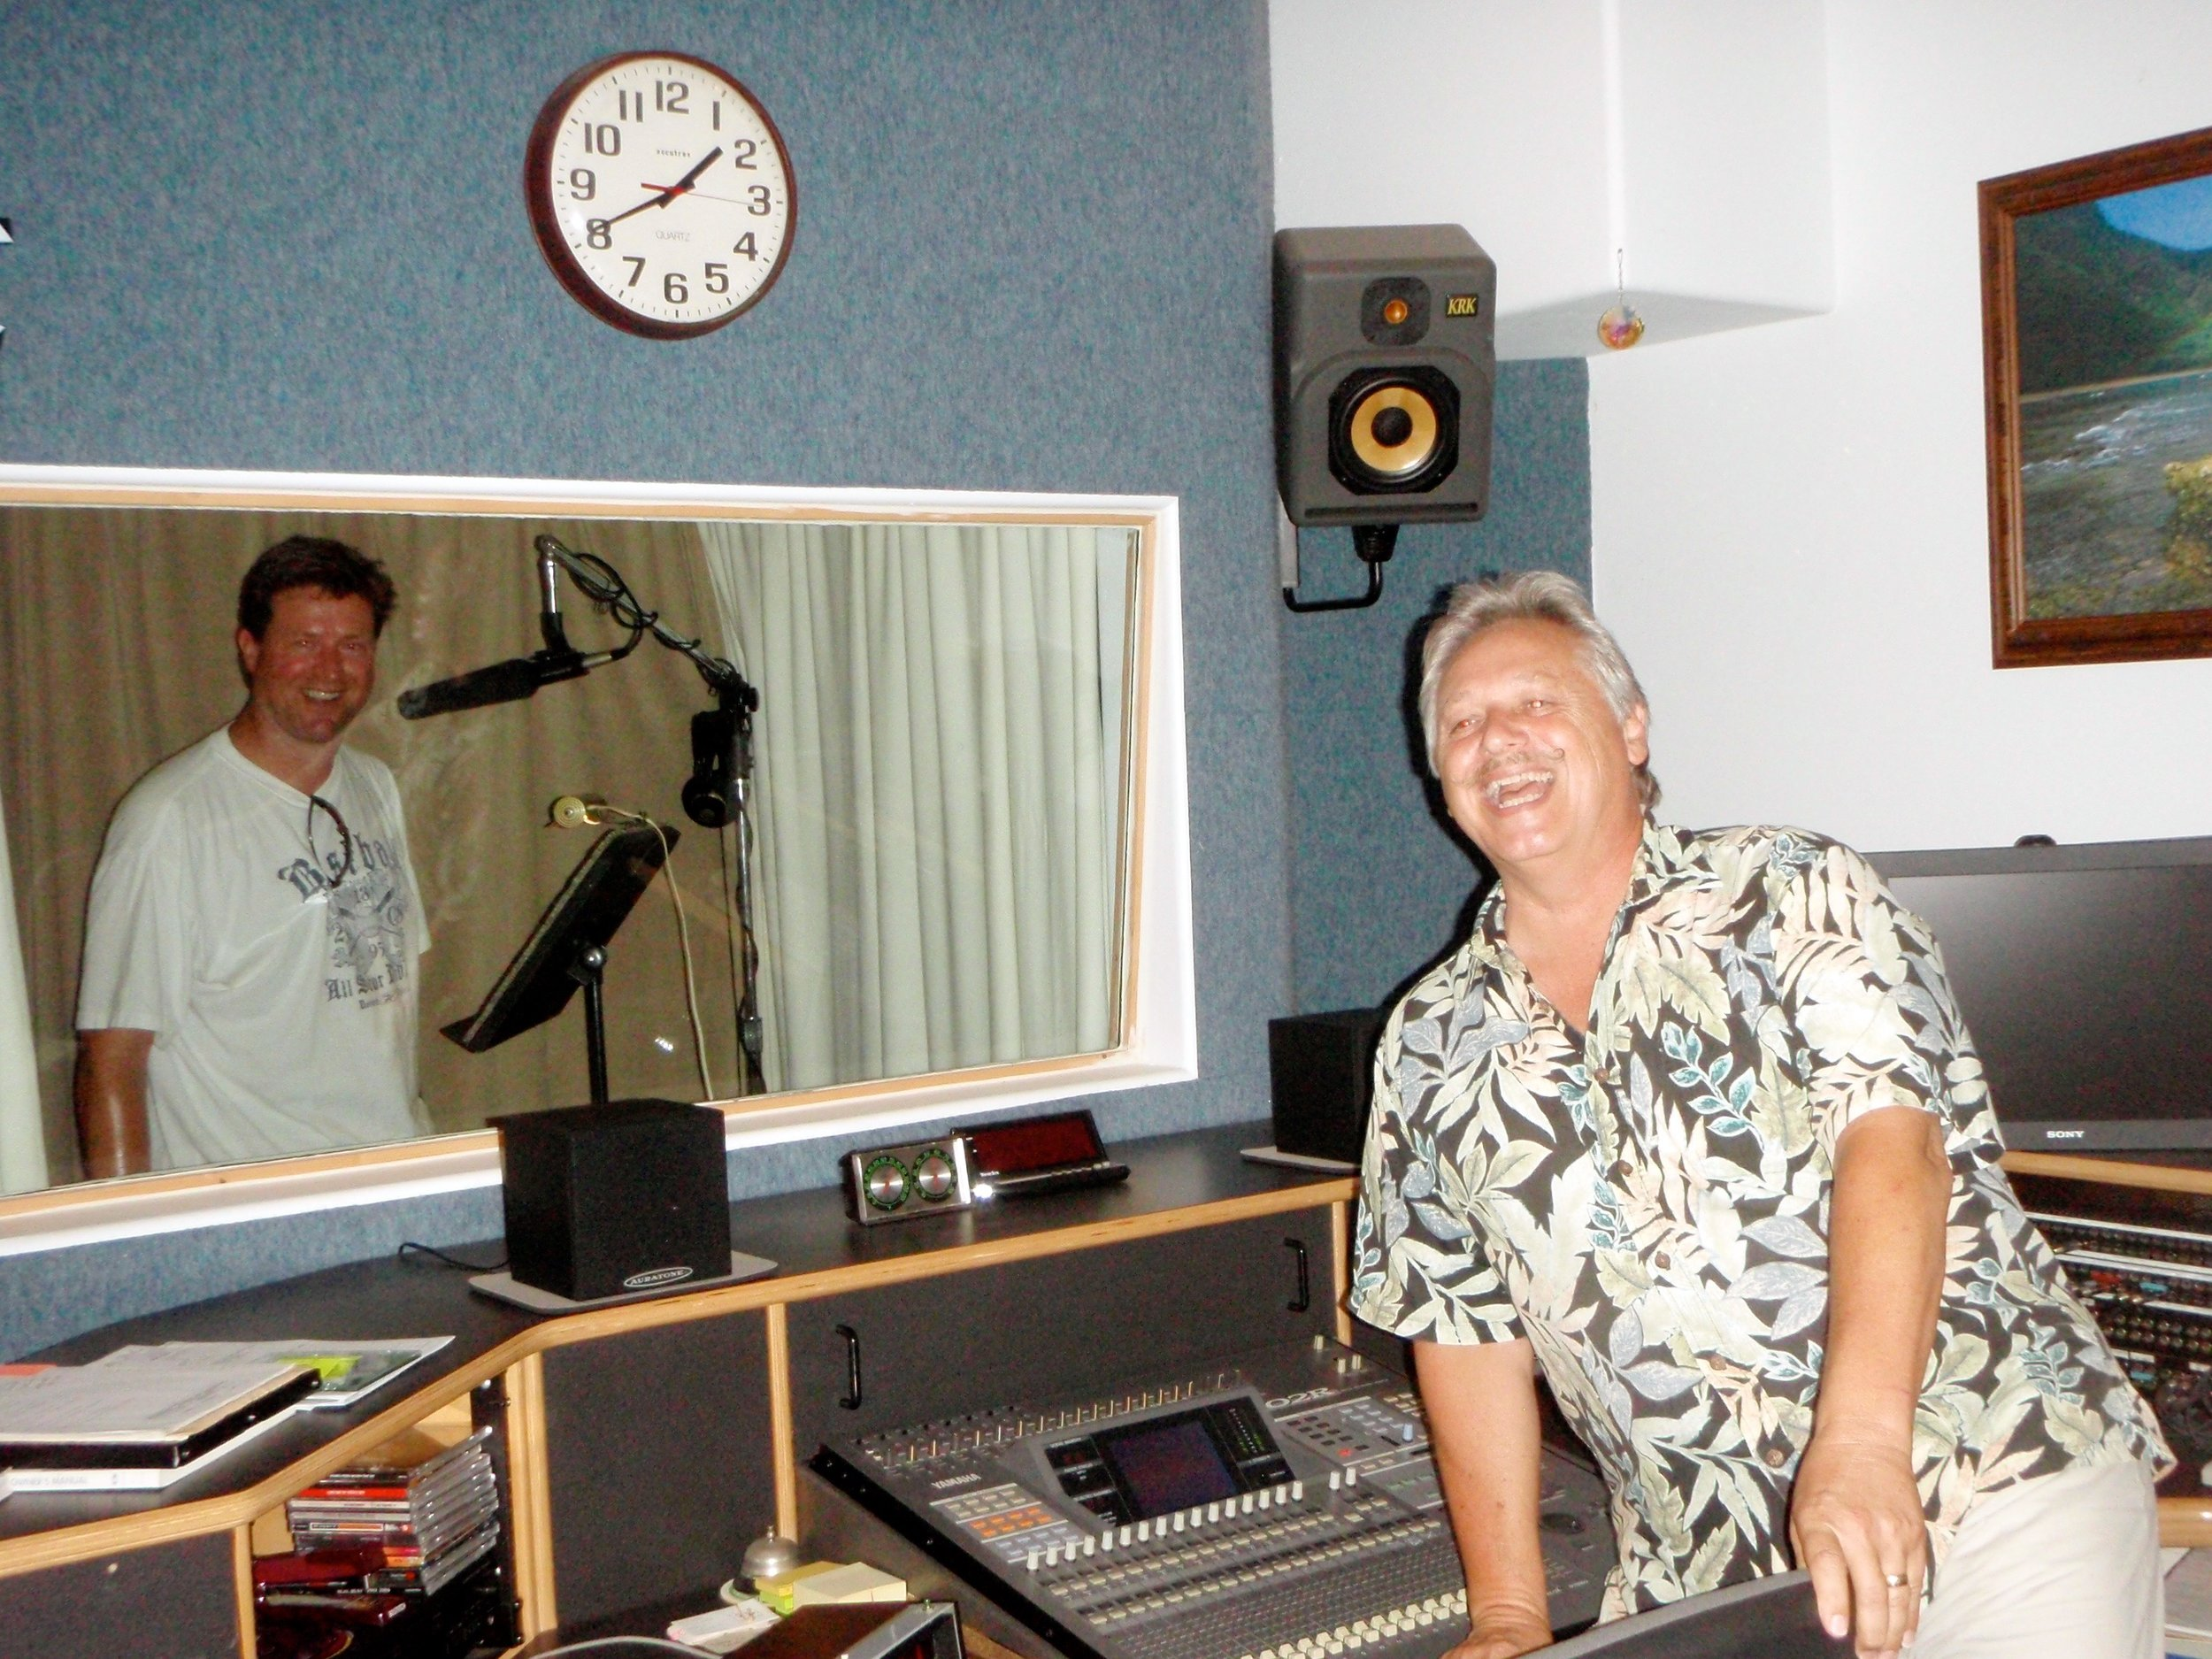 Sealed behind glass at the wonderful Audio Images recording studio with Davey Lou in Kauai.  Below frame, both men are wearing grass skirts.